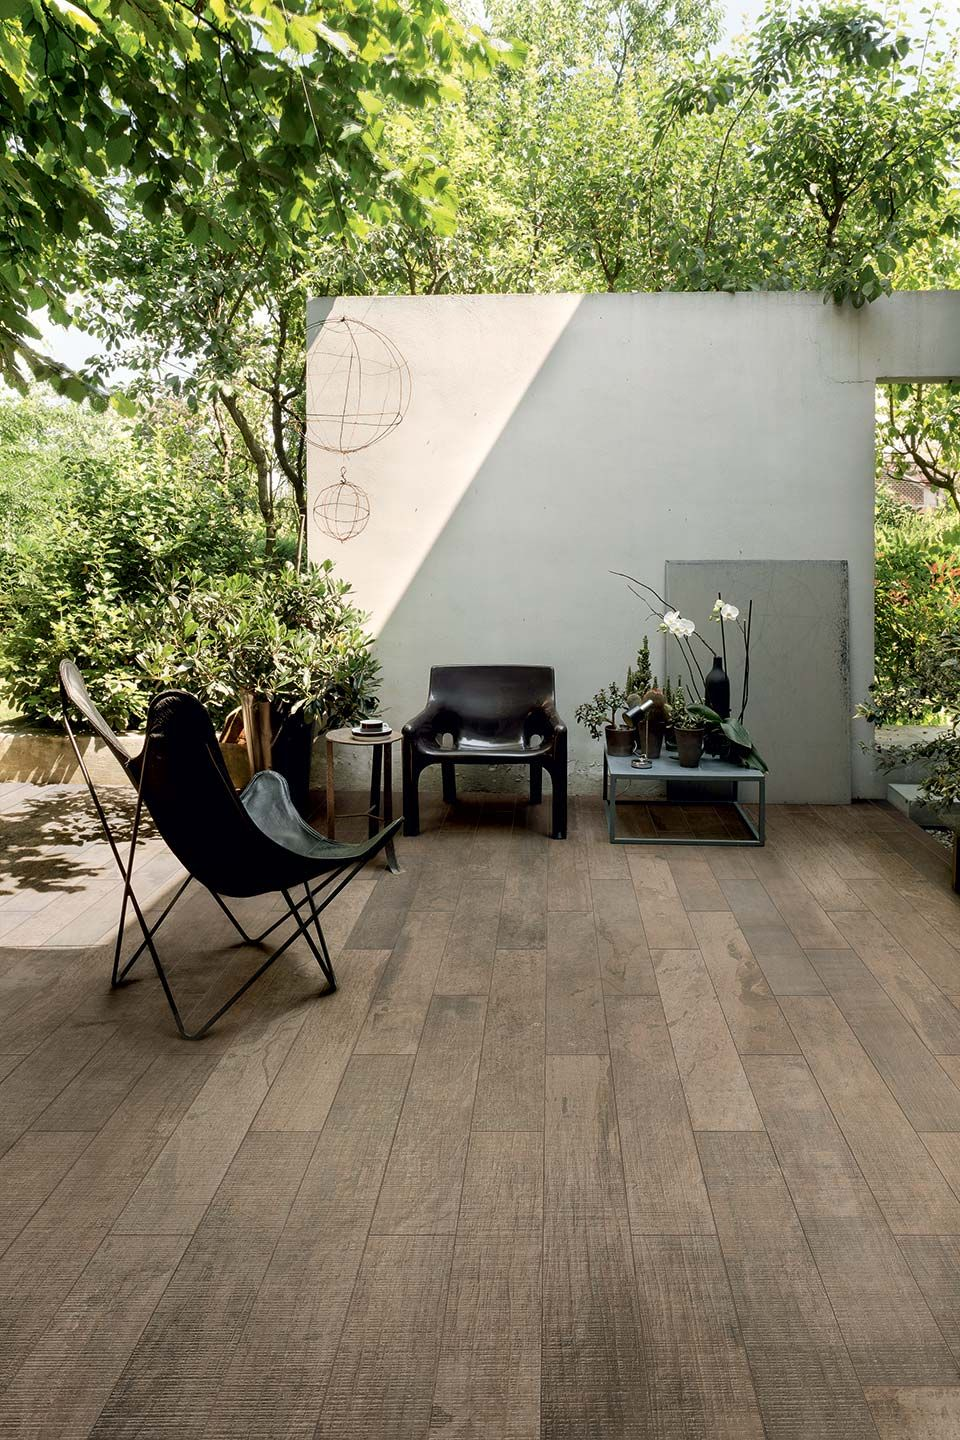 The wood effect of wooden tile shows graphic textures of solid woods the wood effect of wooden tile shows graphic textures of solid woods covered with planks timber tilesoutdoor flooringoutdoor dailygadgetfo Gallery